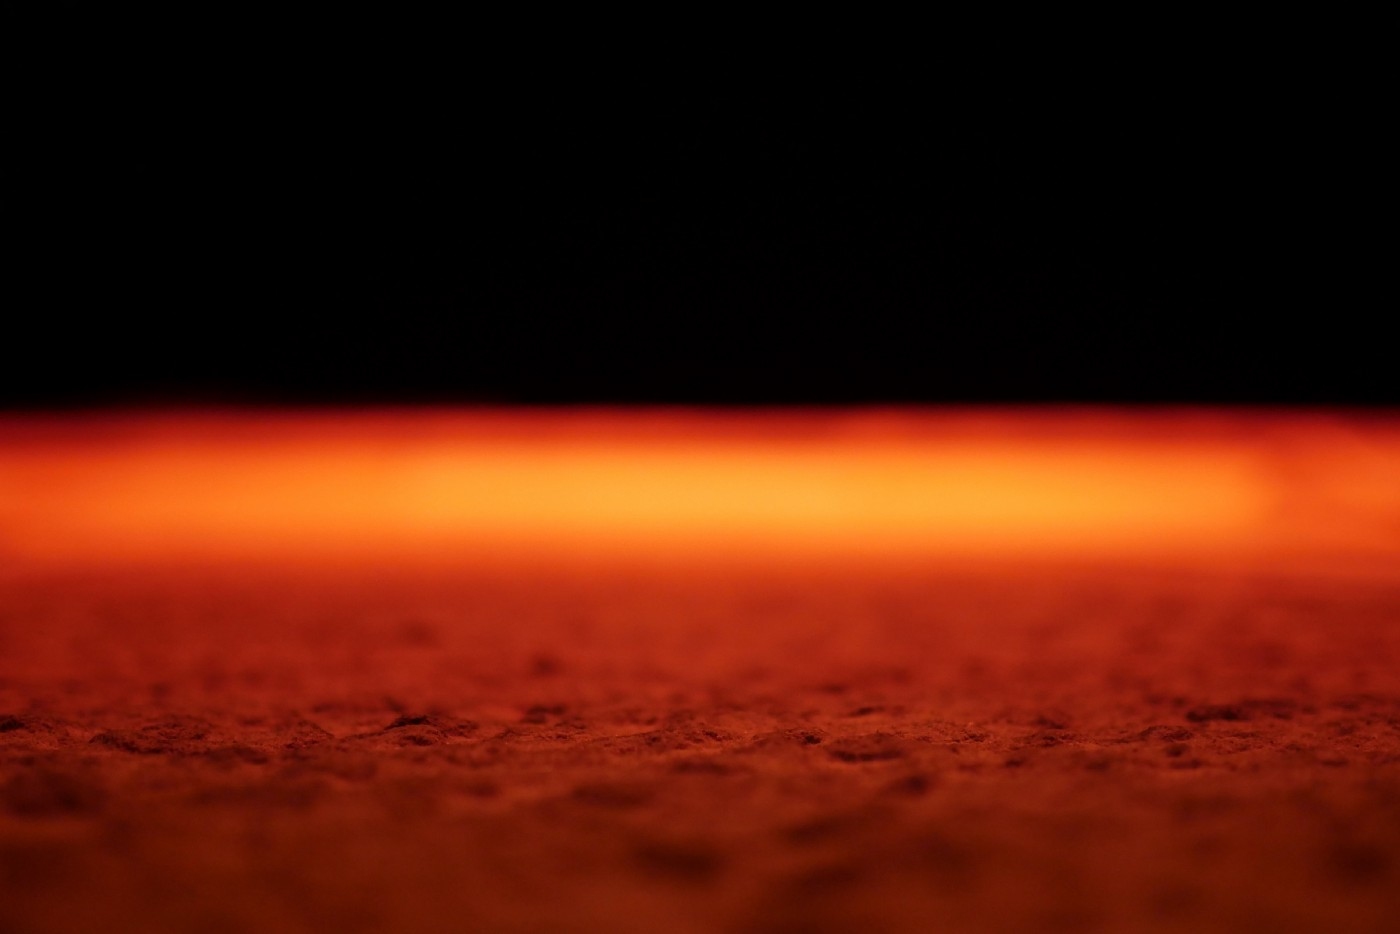 The surface of Mars glowing bright orange against the blackness of space